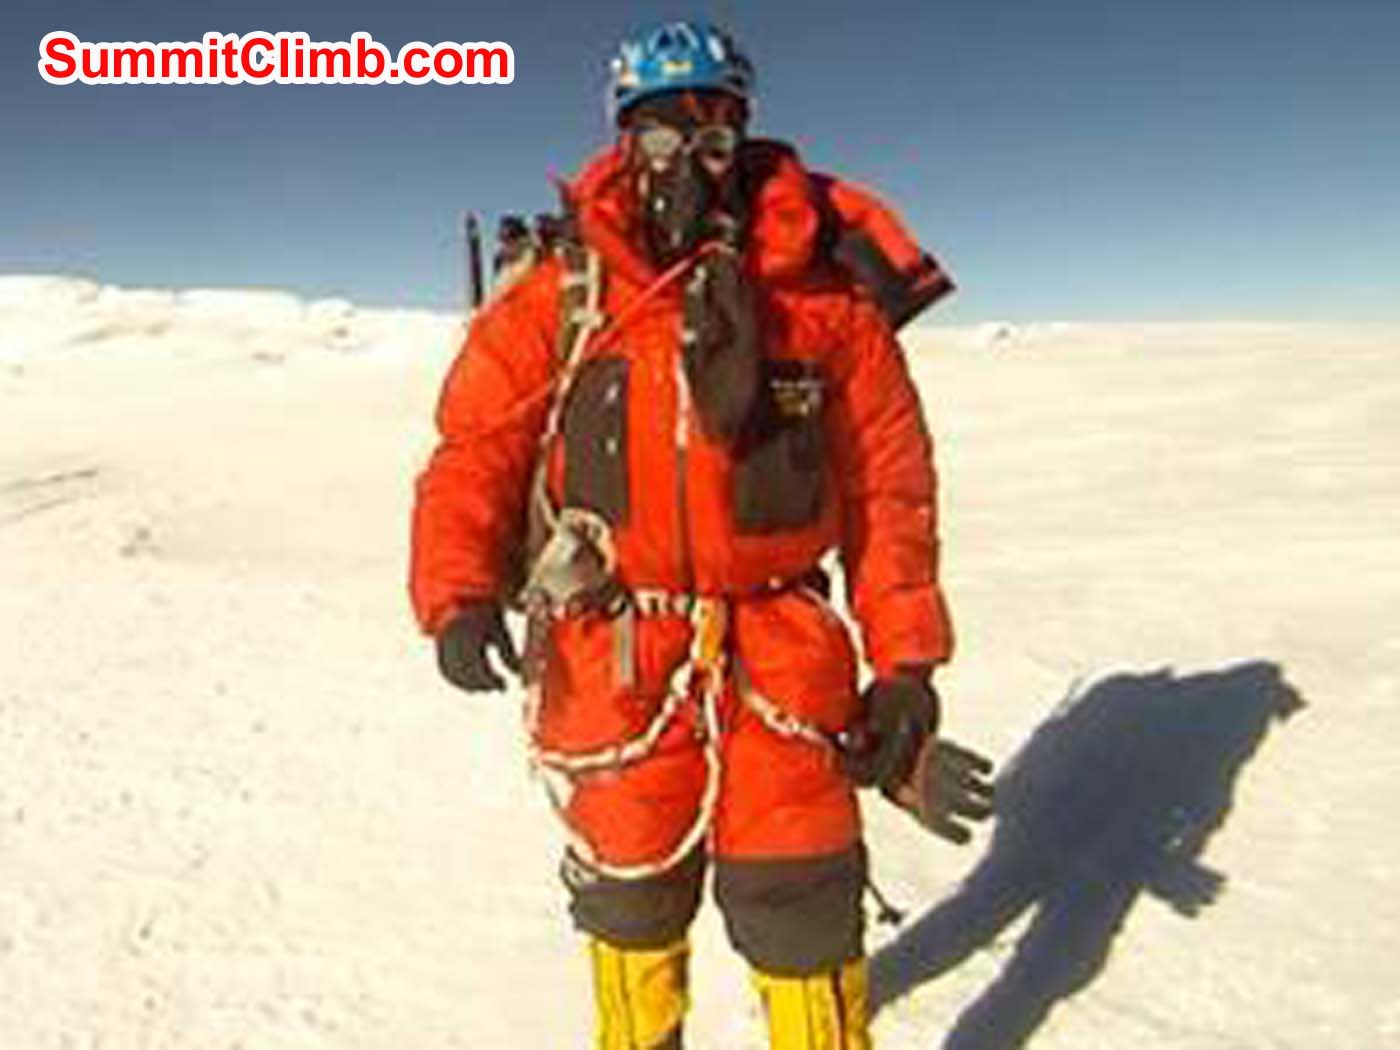 Anders Bergvall on the Summit of Cho Oyu. Jangbu Sherpa Photo